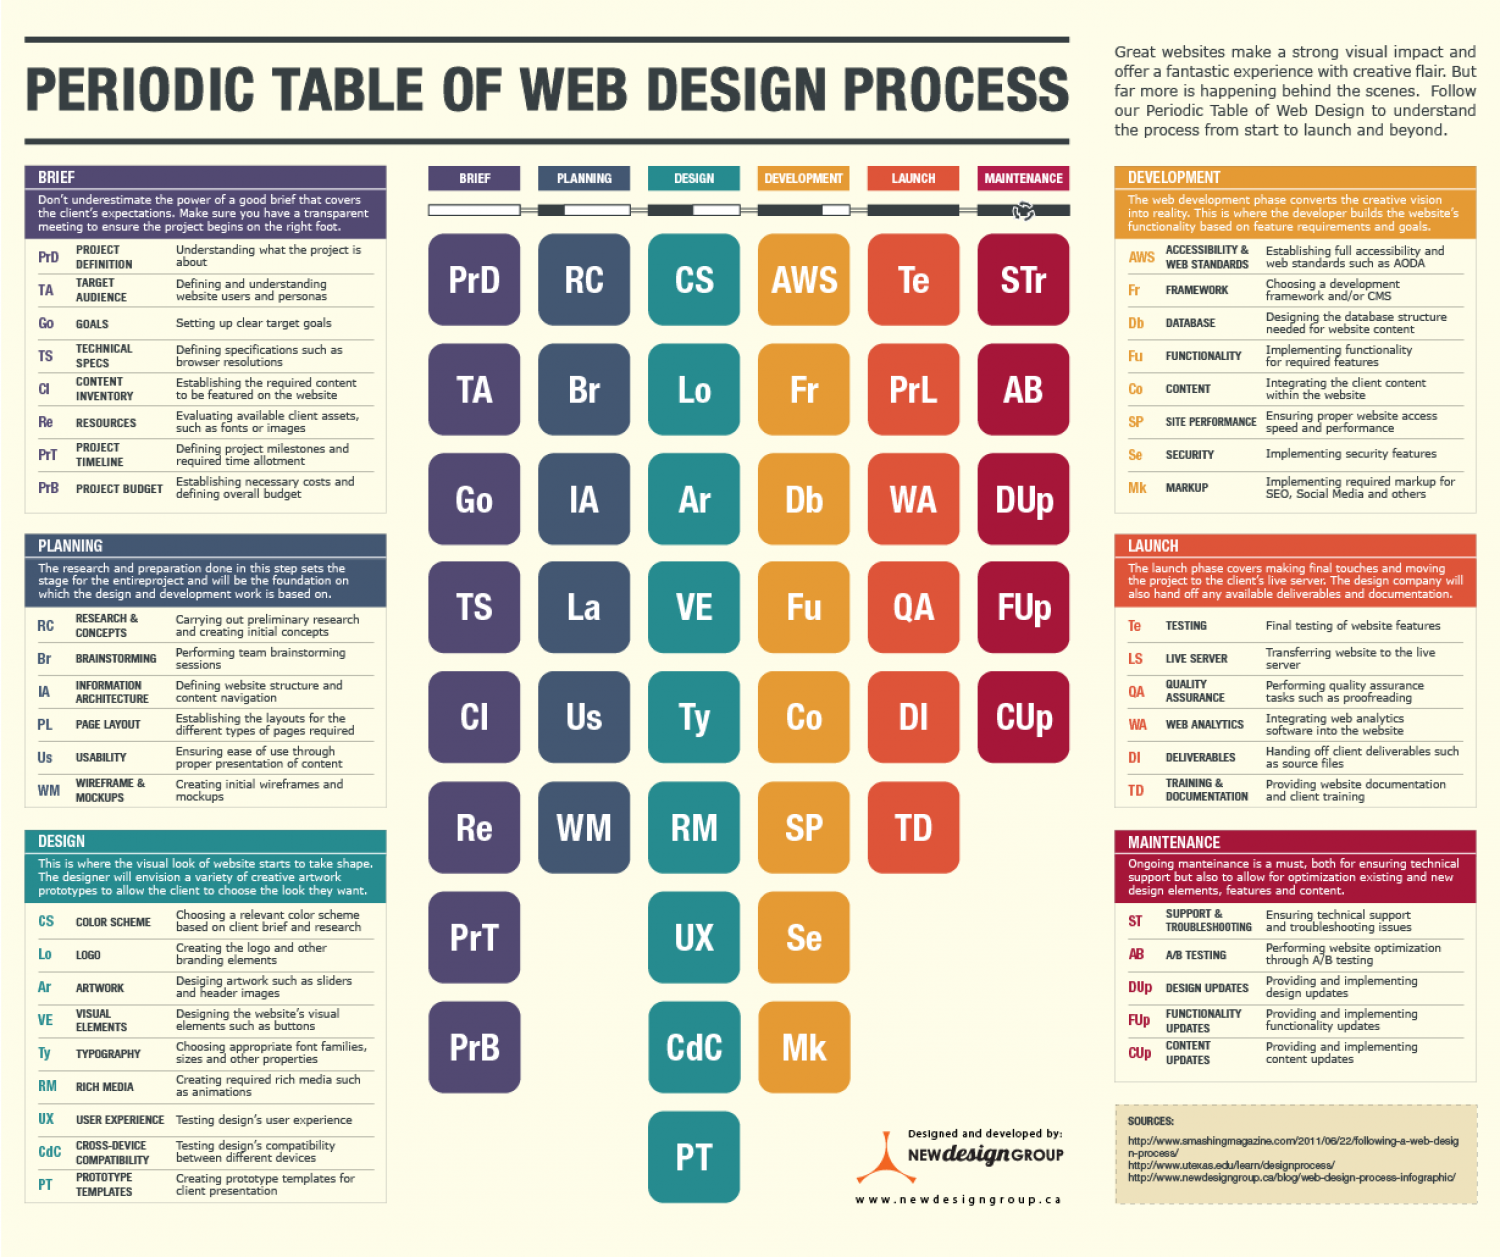 The Periodic Table of Web Design Process  Infographic